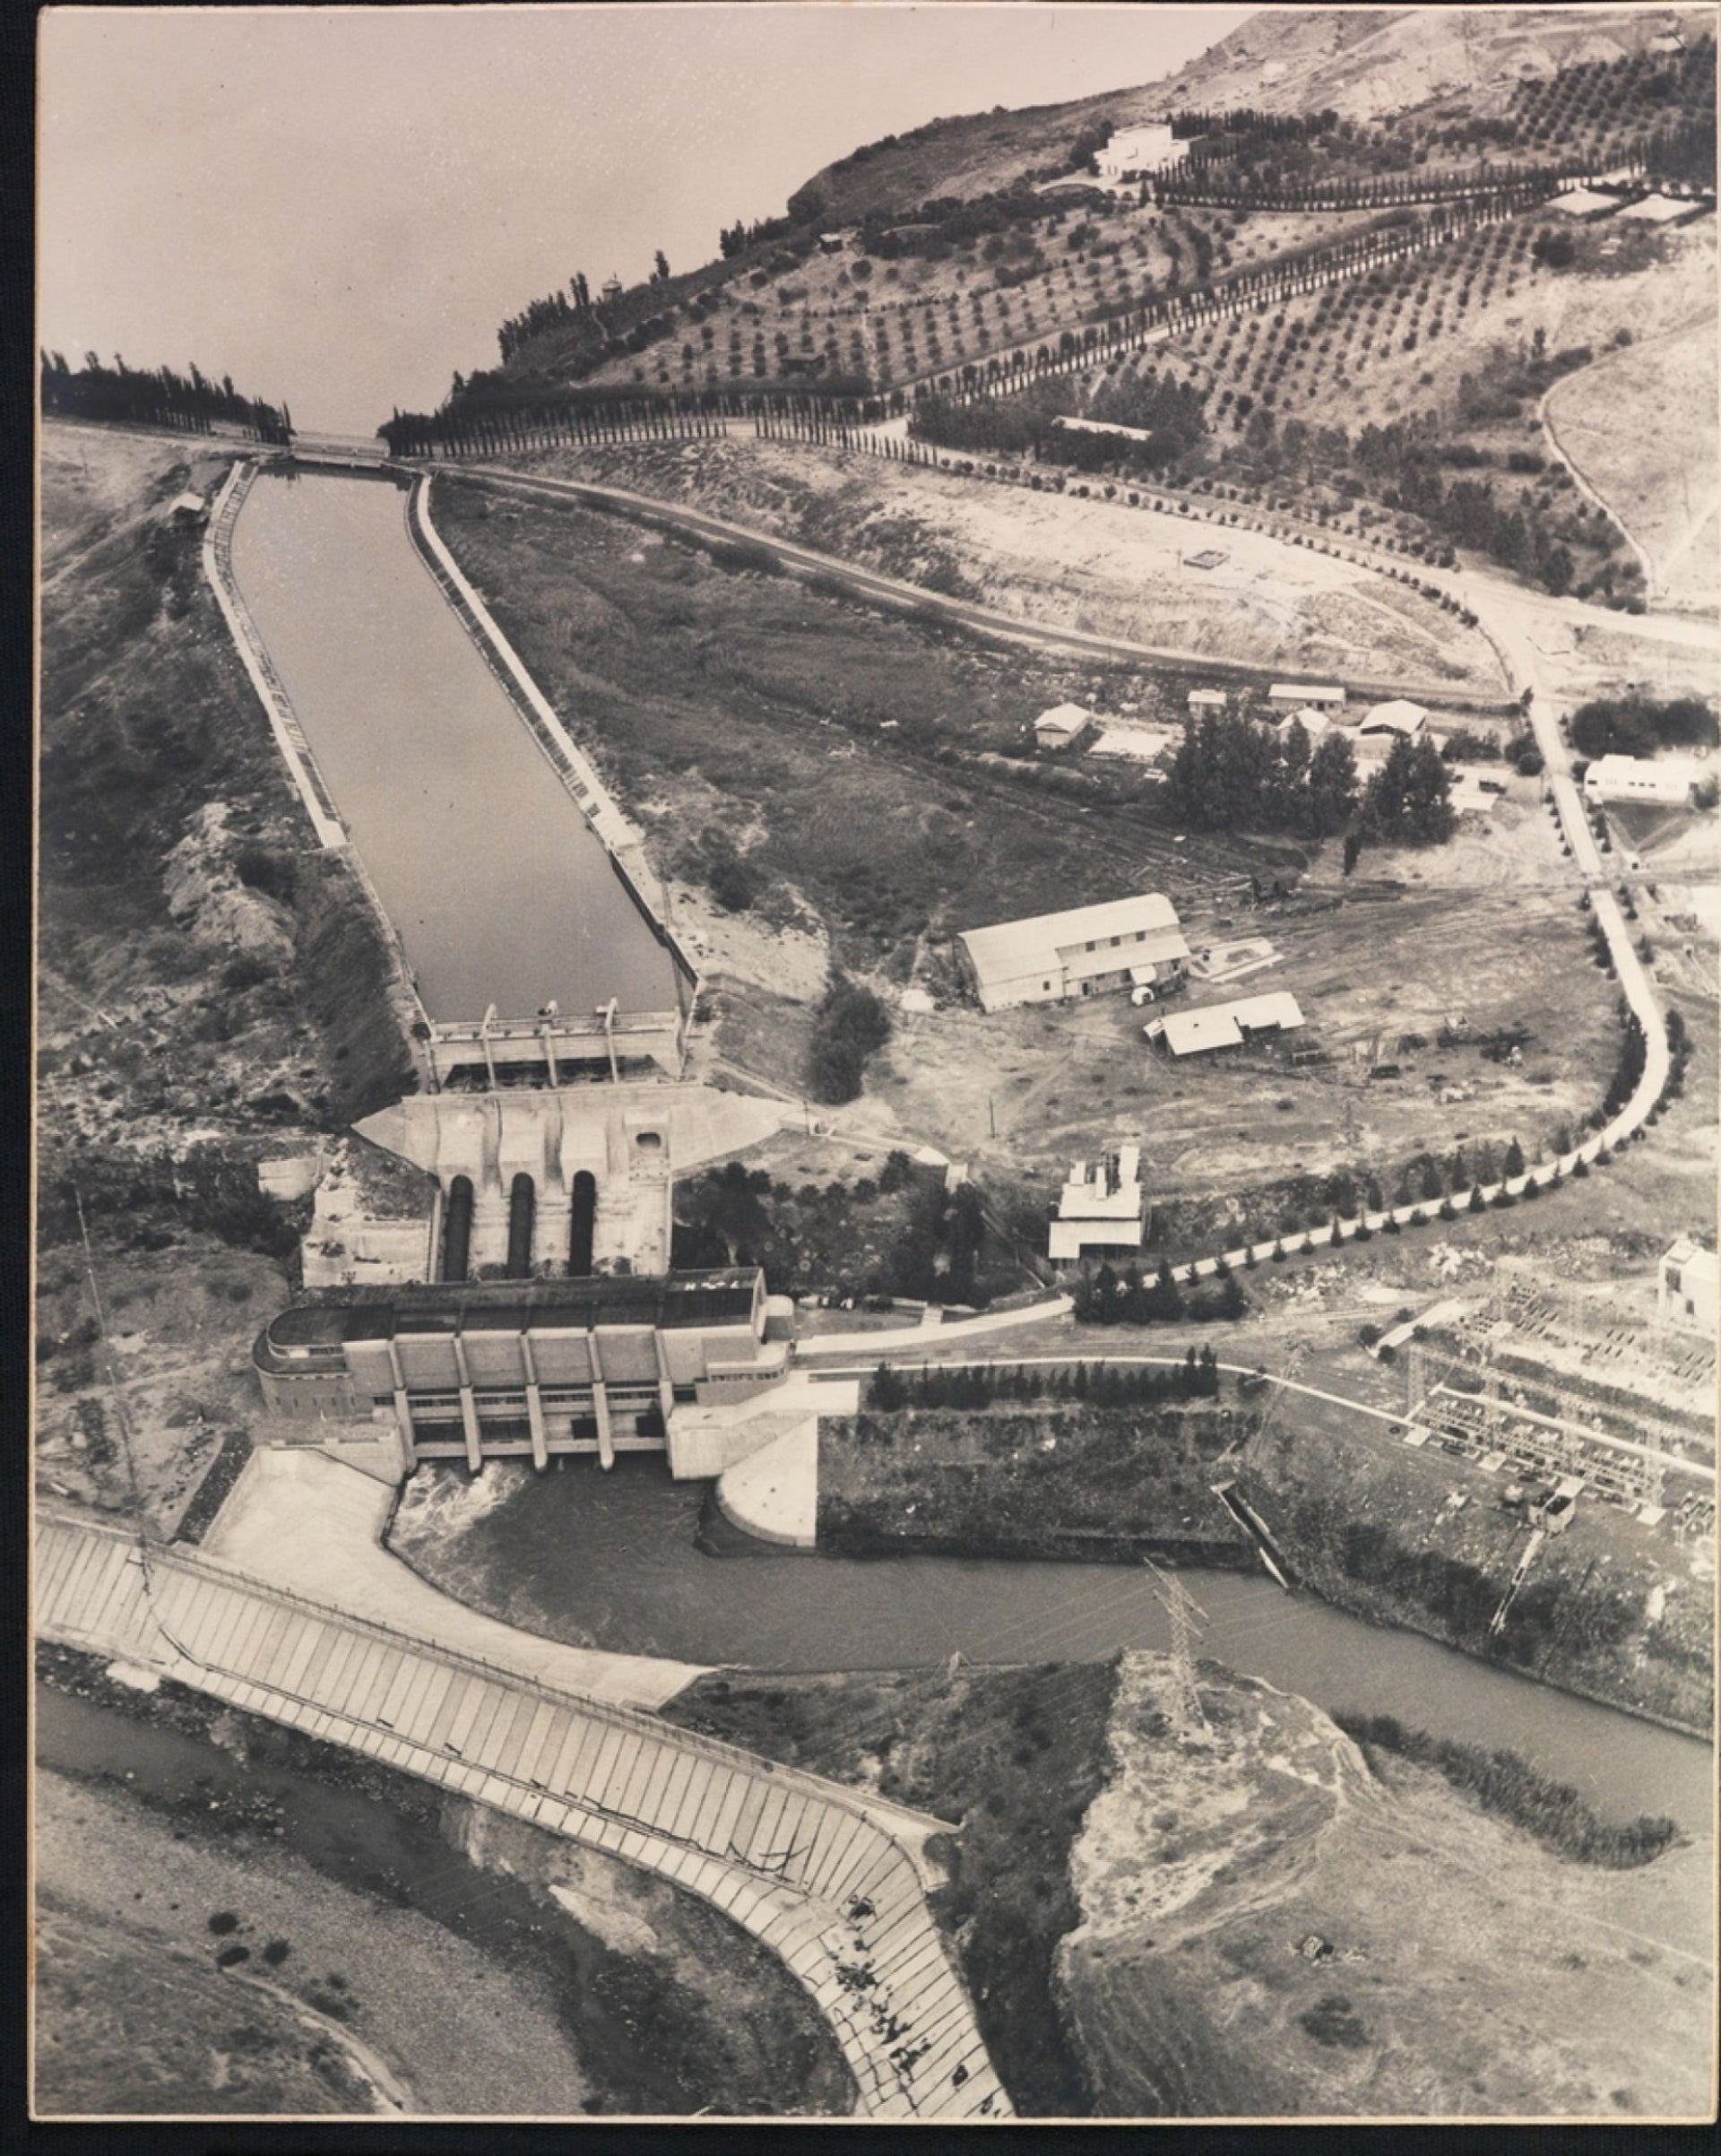 Aerial photo of the power station at Naharayim